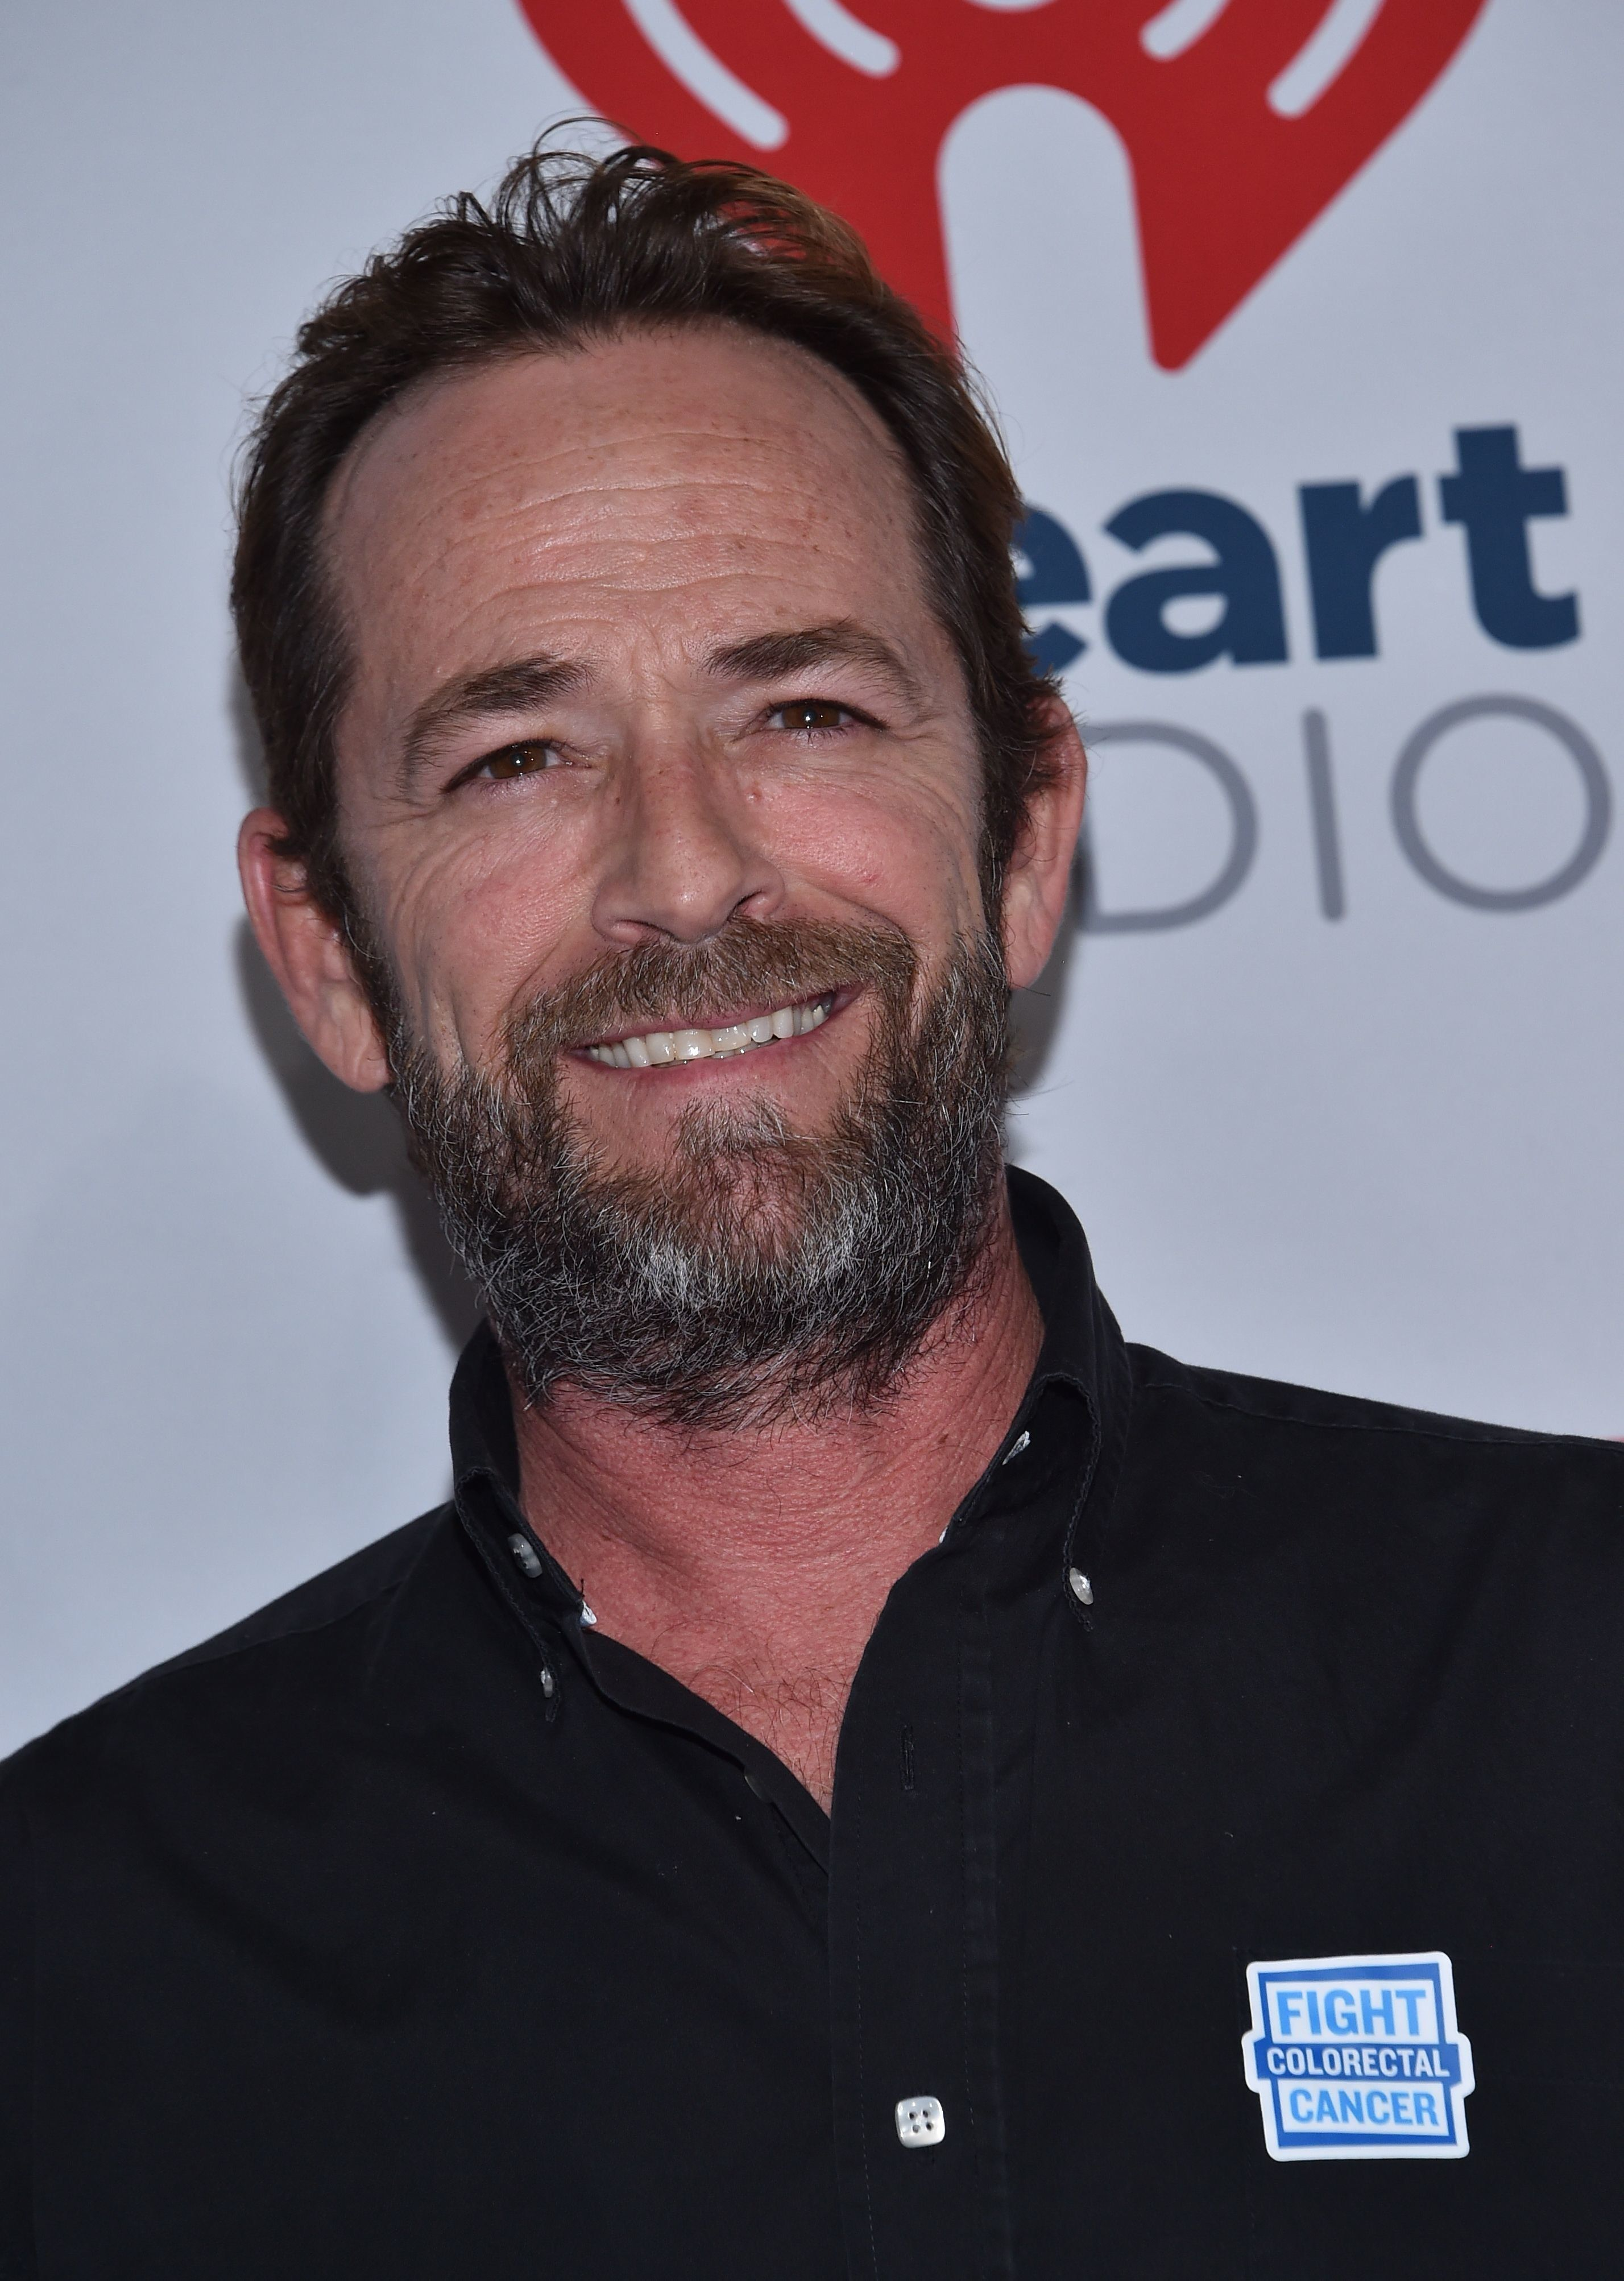 Actor Luke Perry arrivesin the press room for day 2 of iHeartRadio Music Festival in Las Vegas, Nevada on September 22, 2018. (Photo by CHRIS DELMAS / AFP)        (Photo credit should read CHRIS DELMAS/AFP/Getty Images)